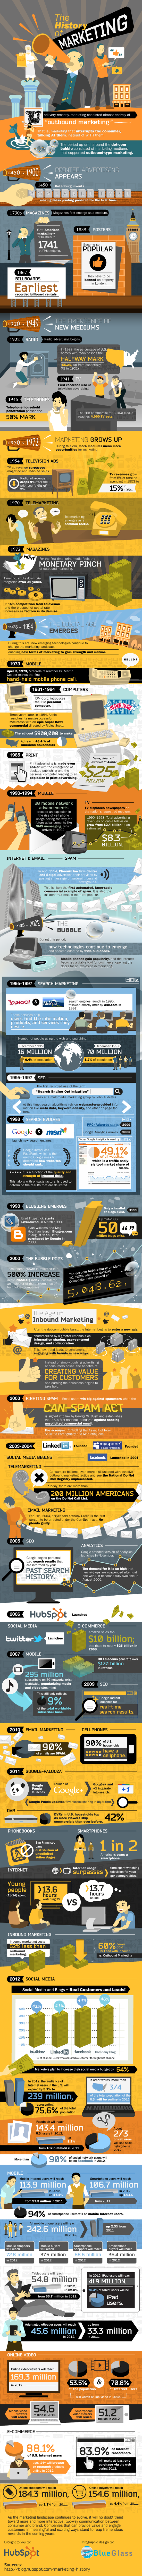 the history of marketing HUBSPOT resized 600.jpg